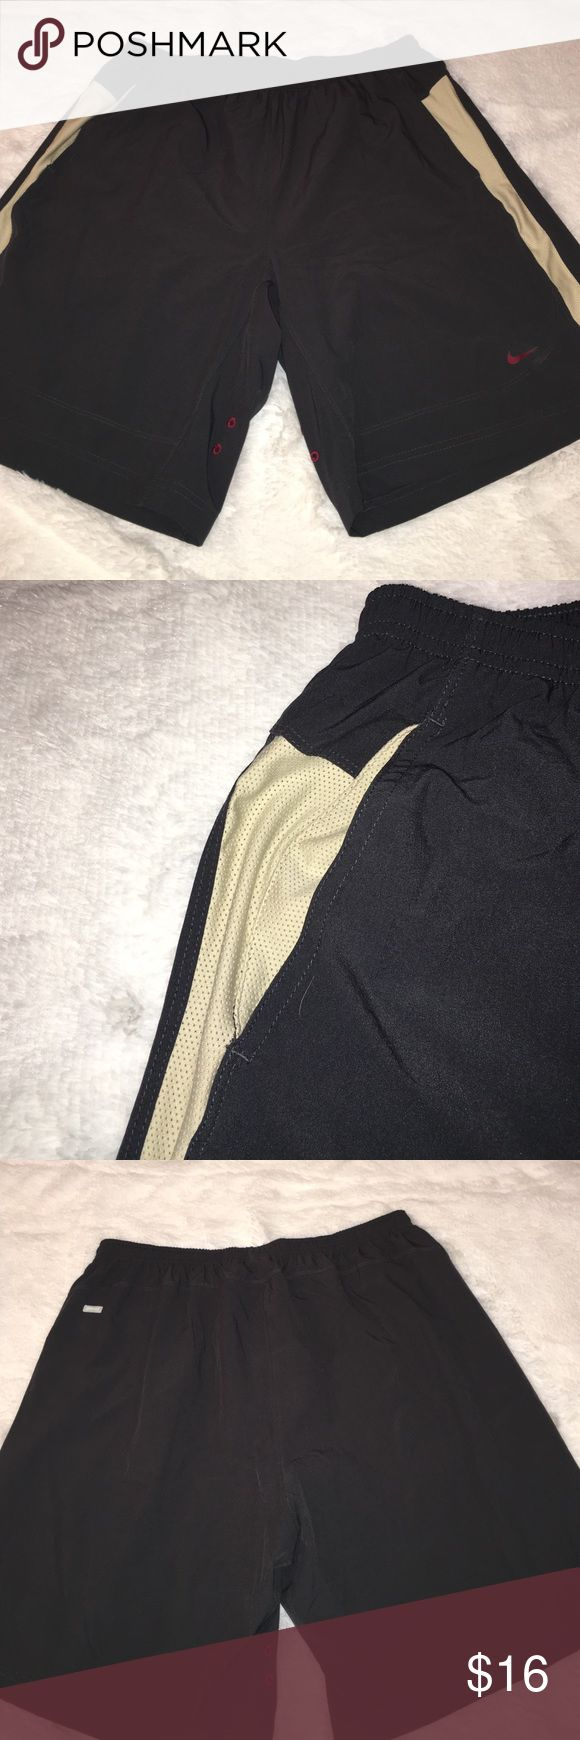 Men's Nike Dri-fit shorts Gray Nike Dri-fit. Shorts have Drawstring and 2 side pockets. Excellent condition.(#2bin) Nike Shorts Athletic